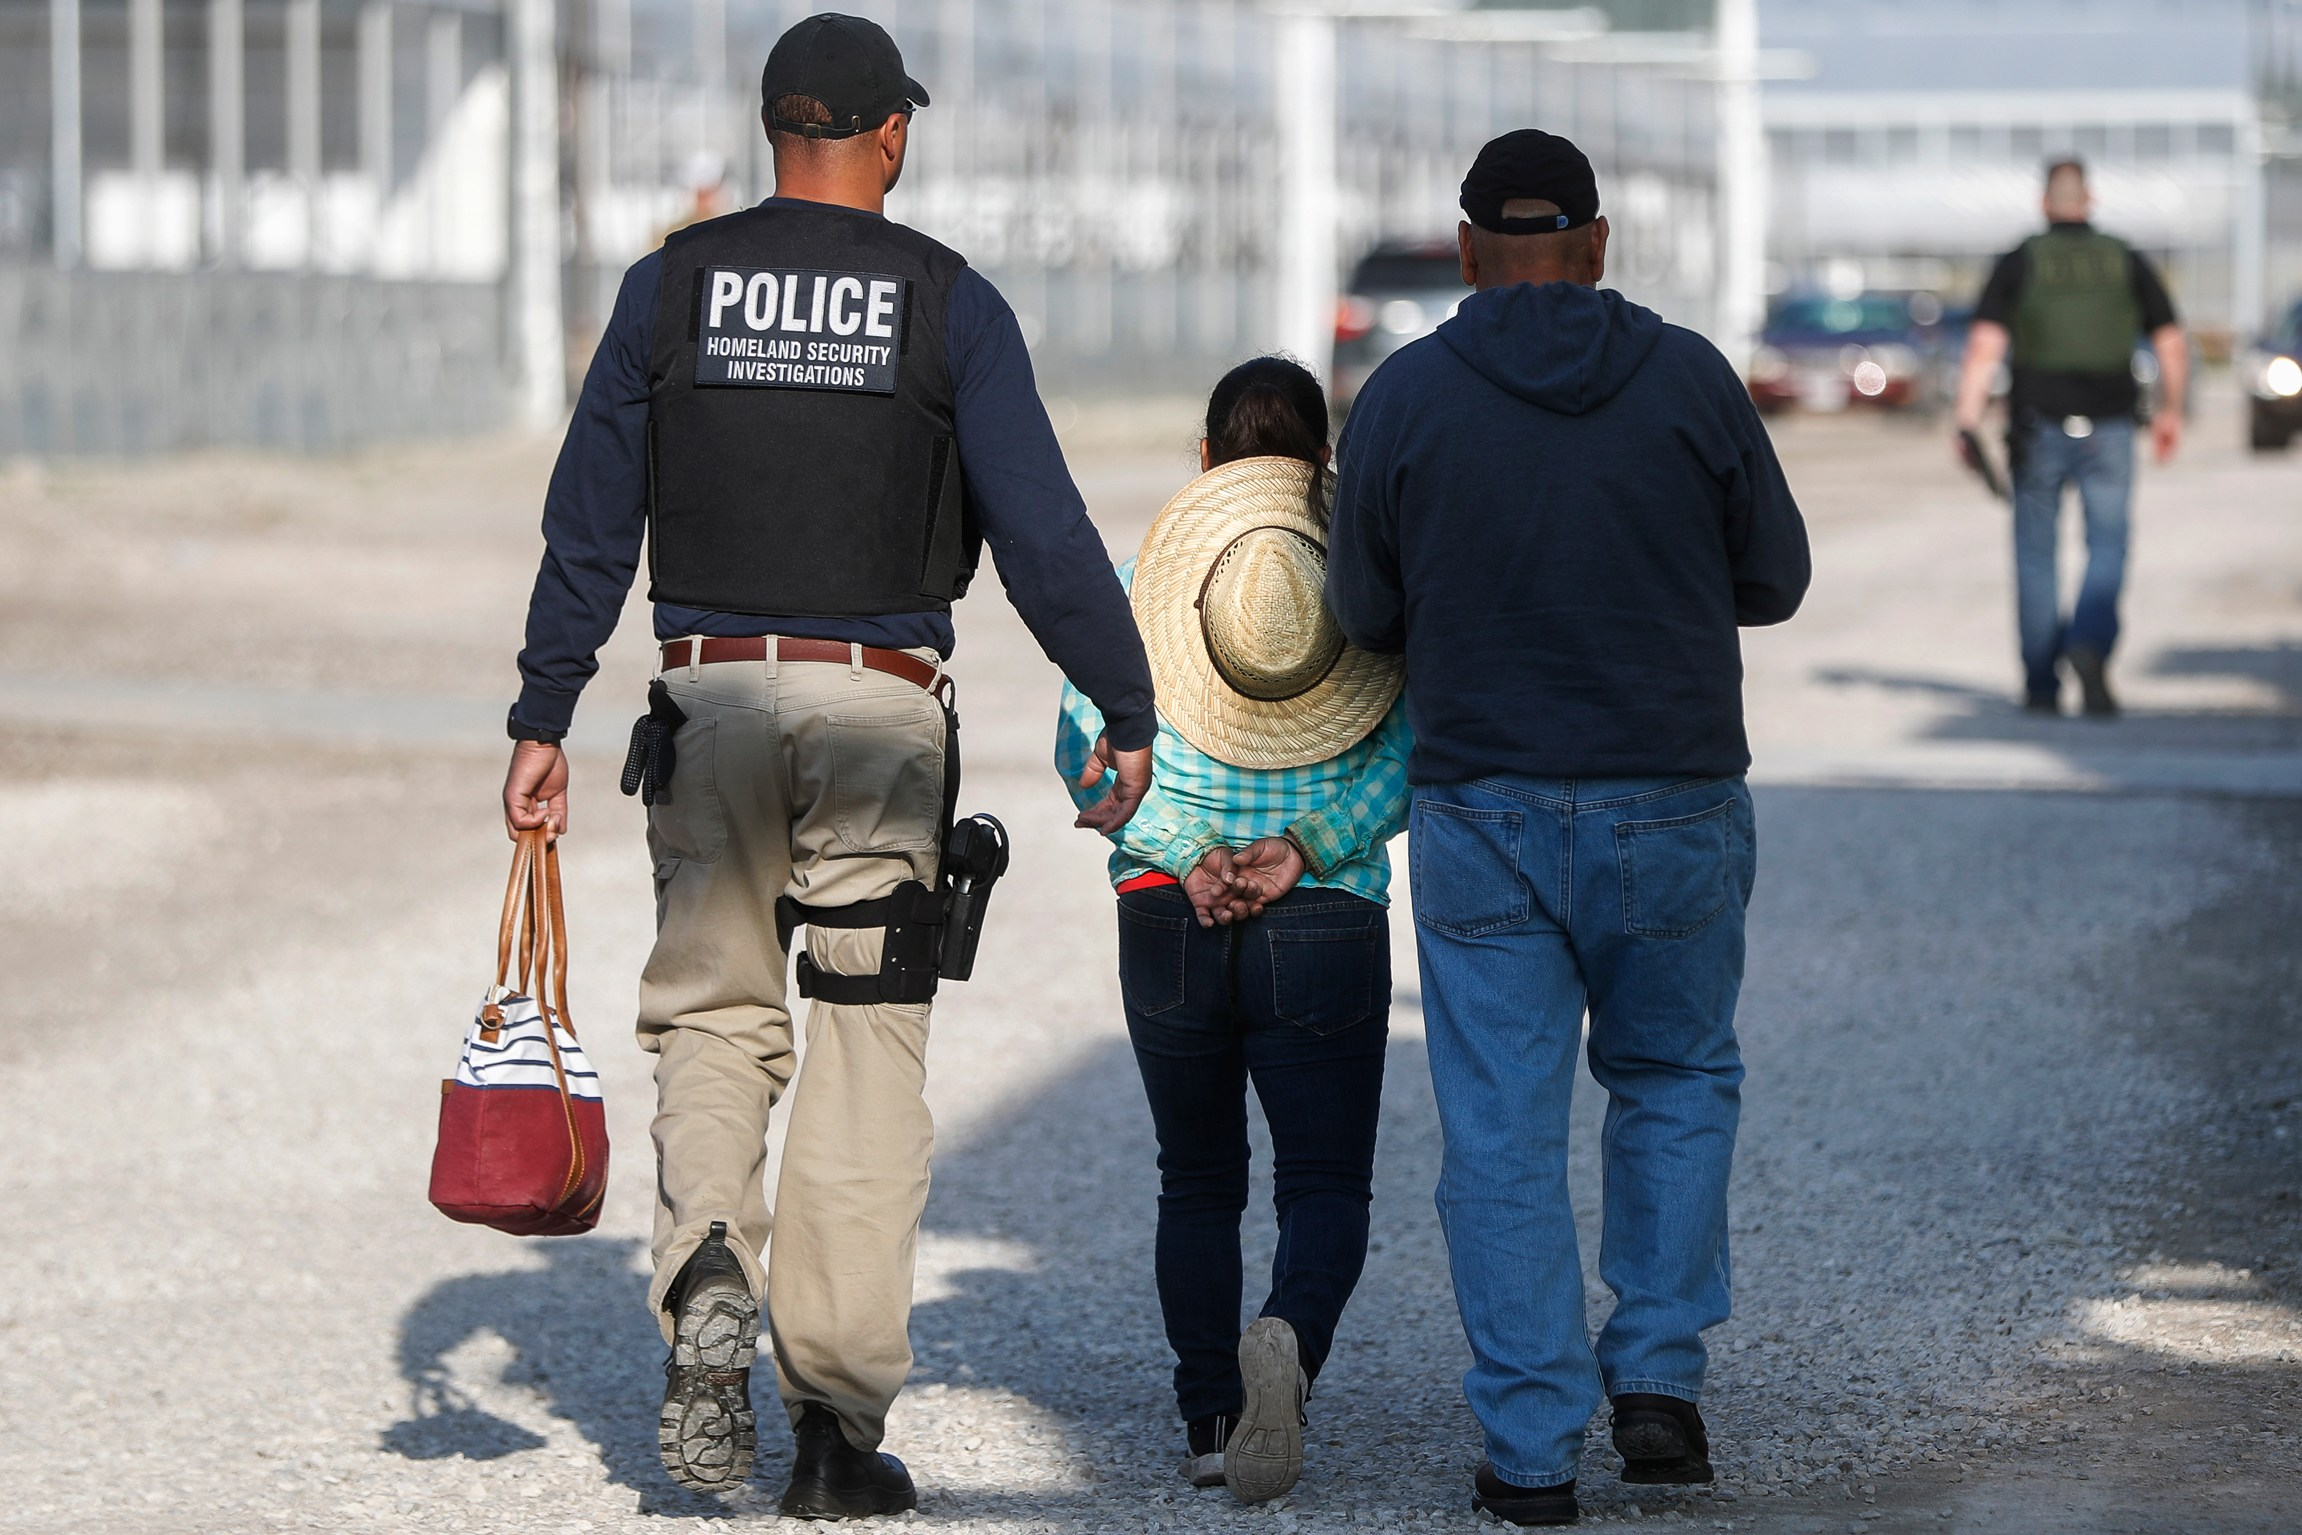 Immigration workers fight the deportation raids